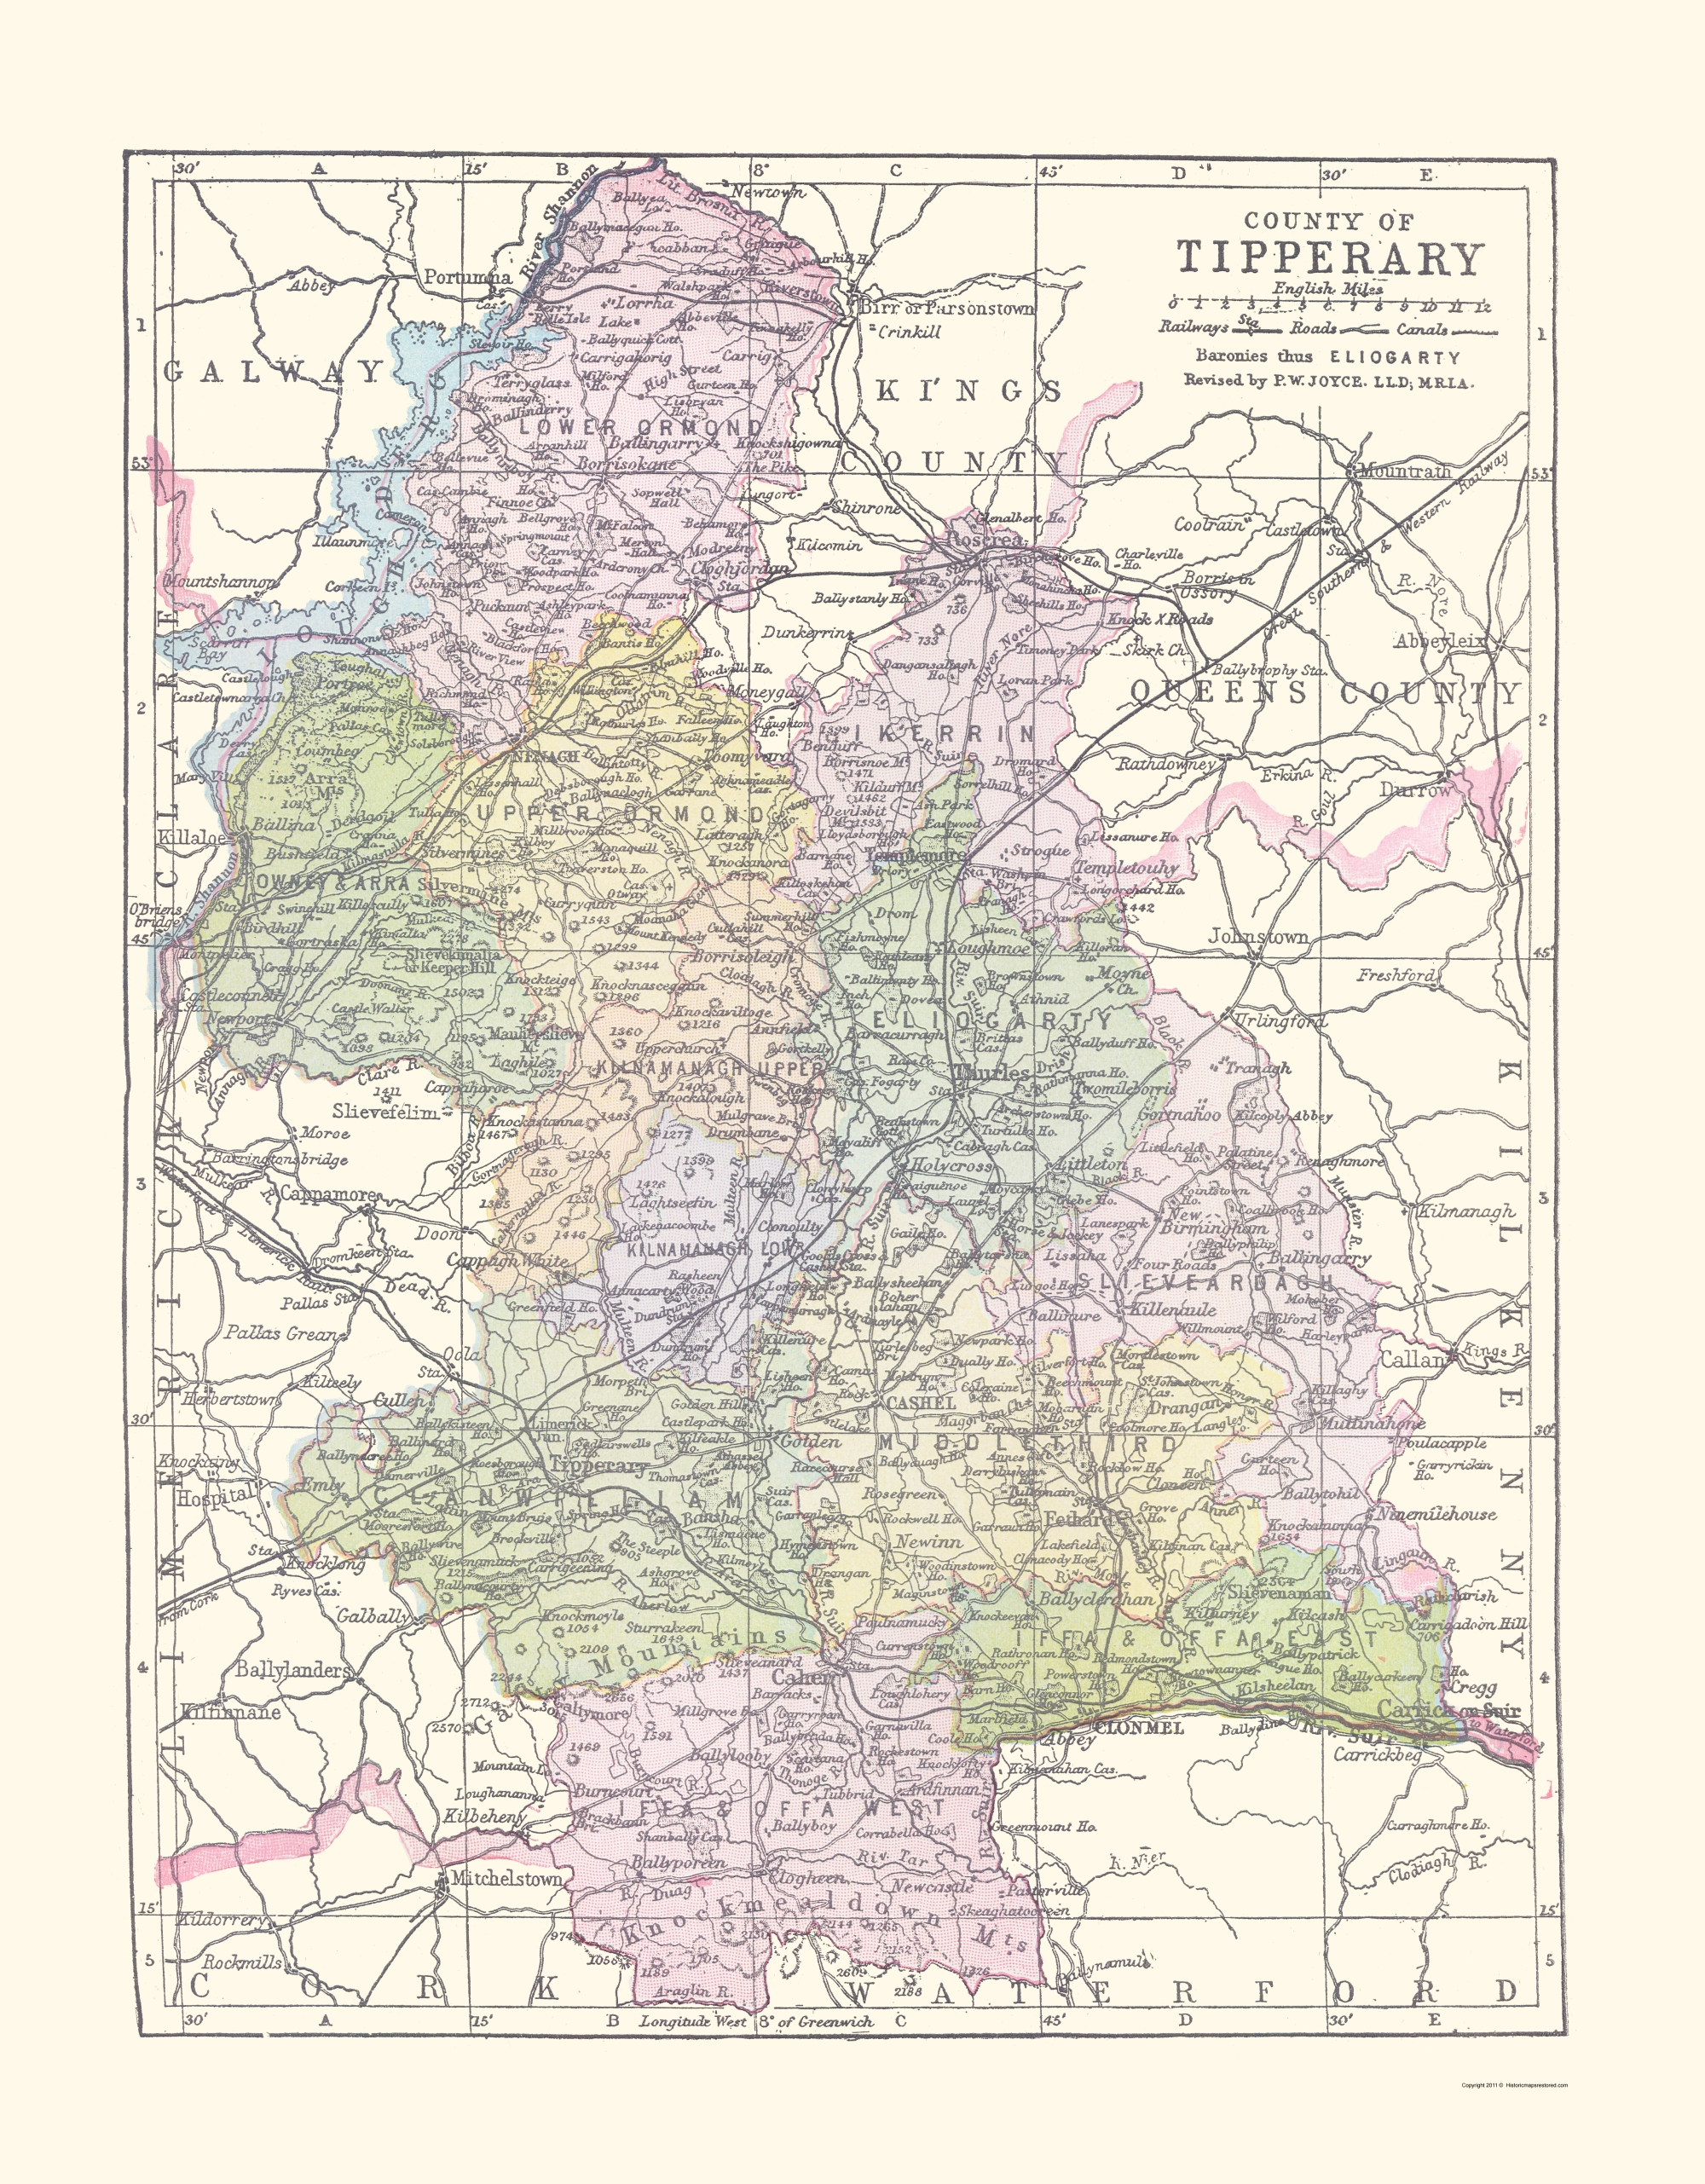 County Tipperary Ireland Map.Old Ireland Map Tipperary County Philip 1882